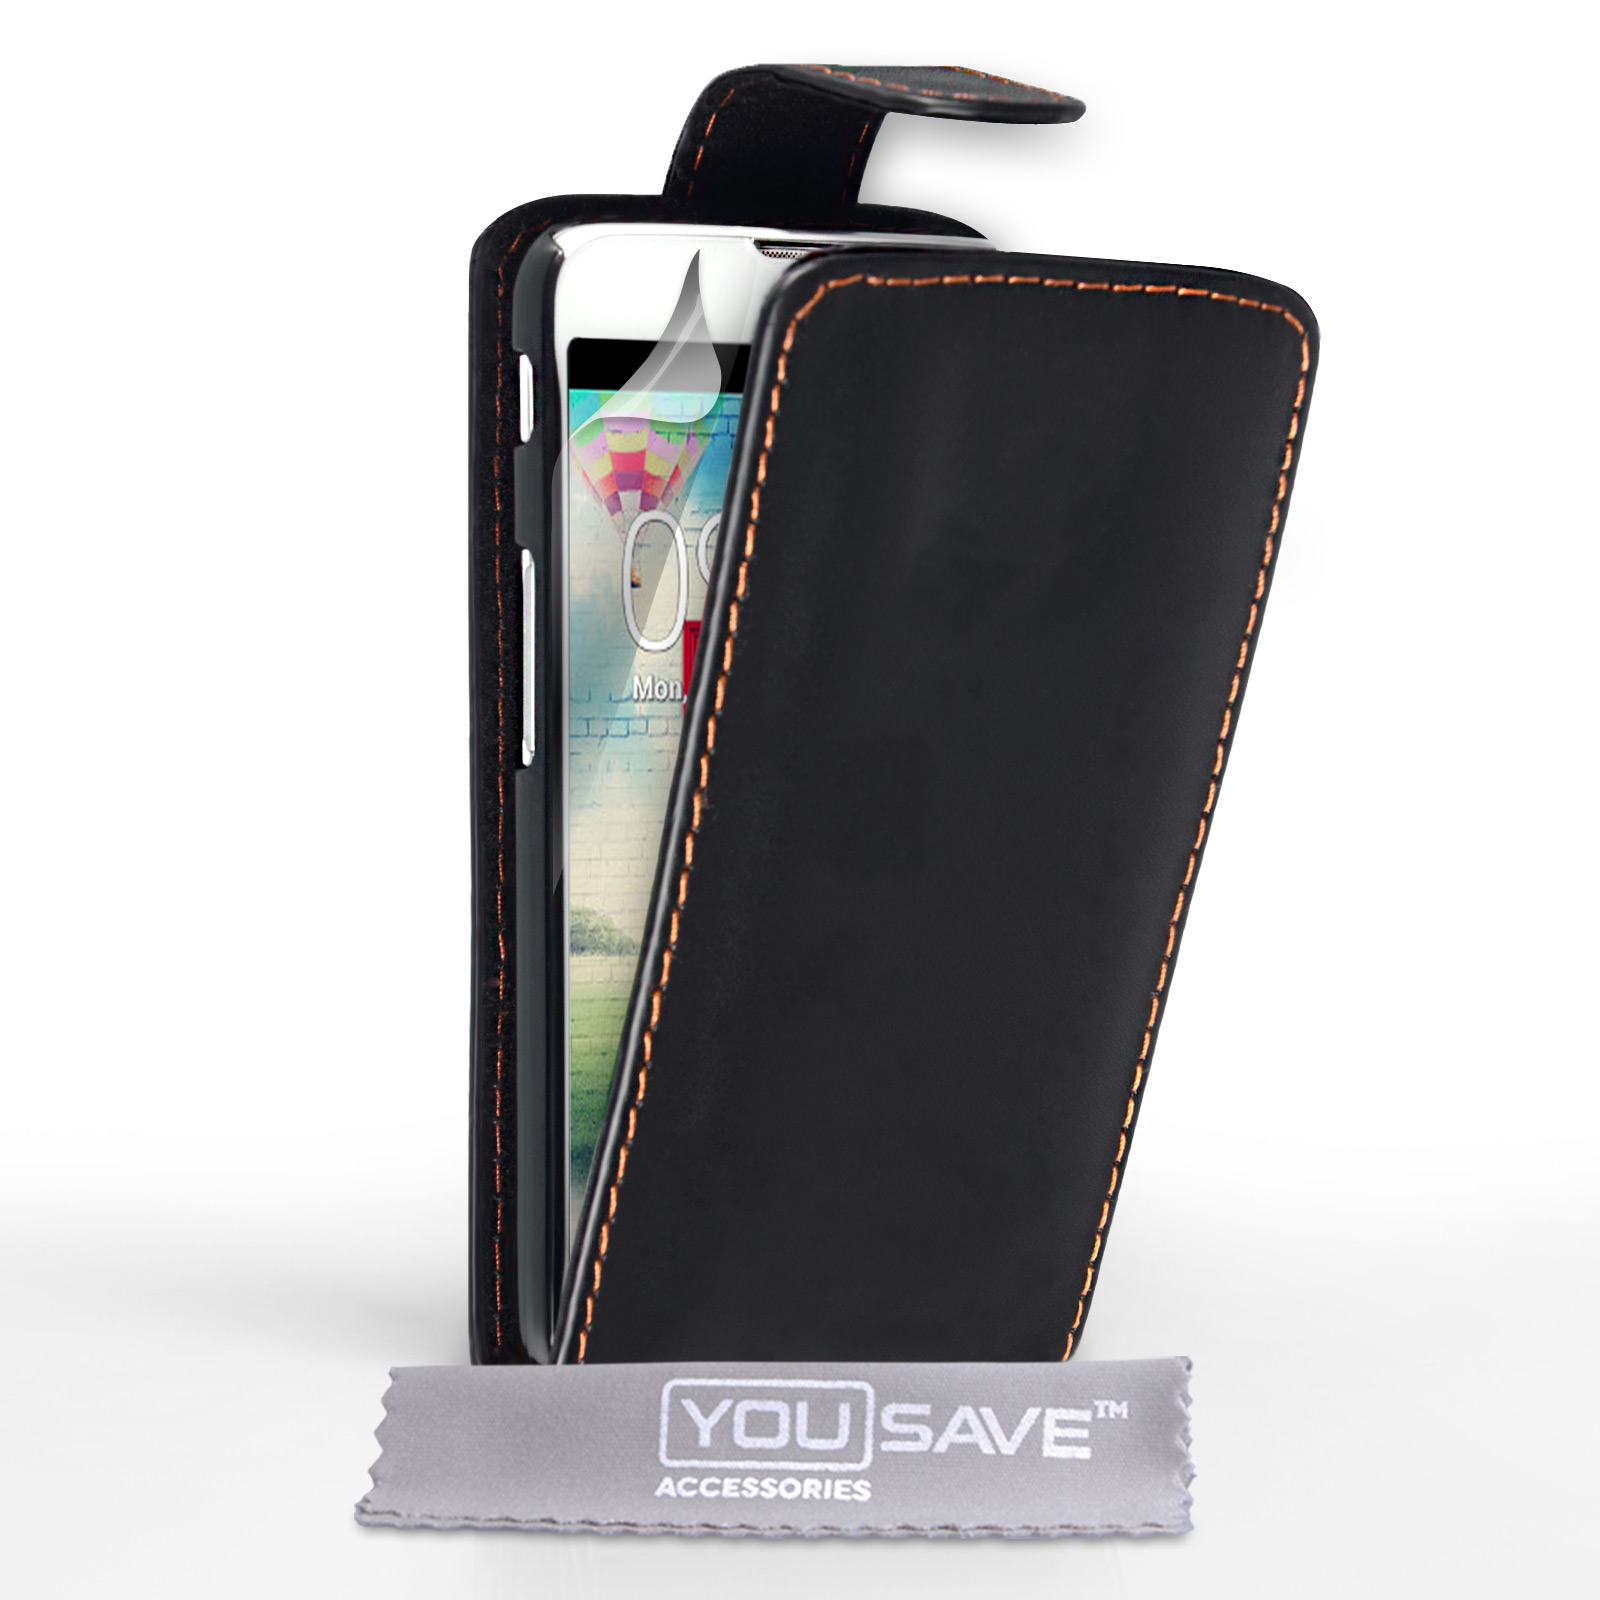 YouSave Accessories LG L70 Leather-Effect Flip Case - Black